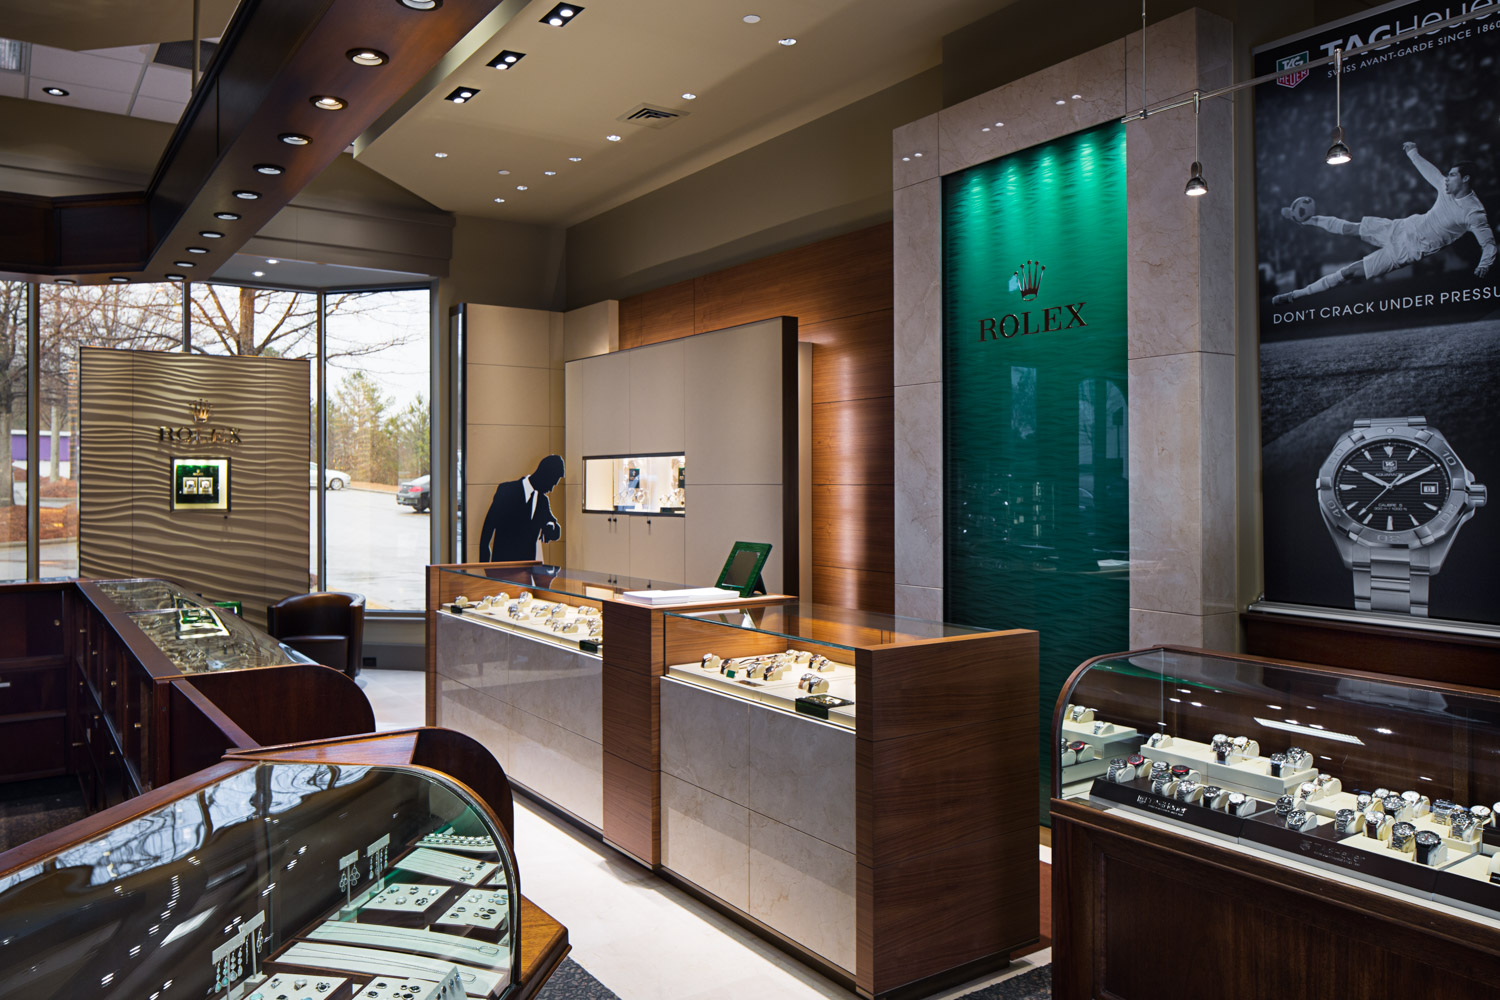 Brombergs - Birmingham AL Jewelry Store - Google Virtual Tour2517.jpg